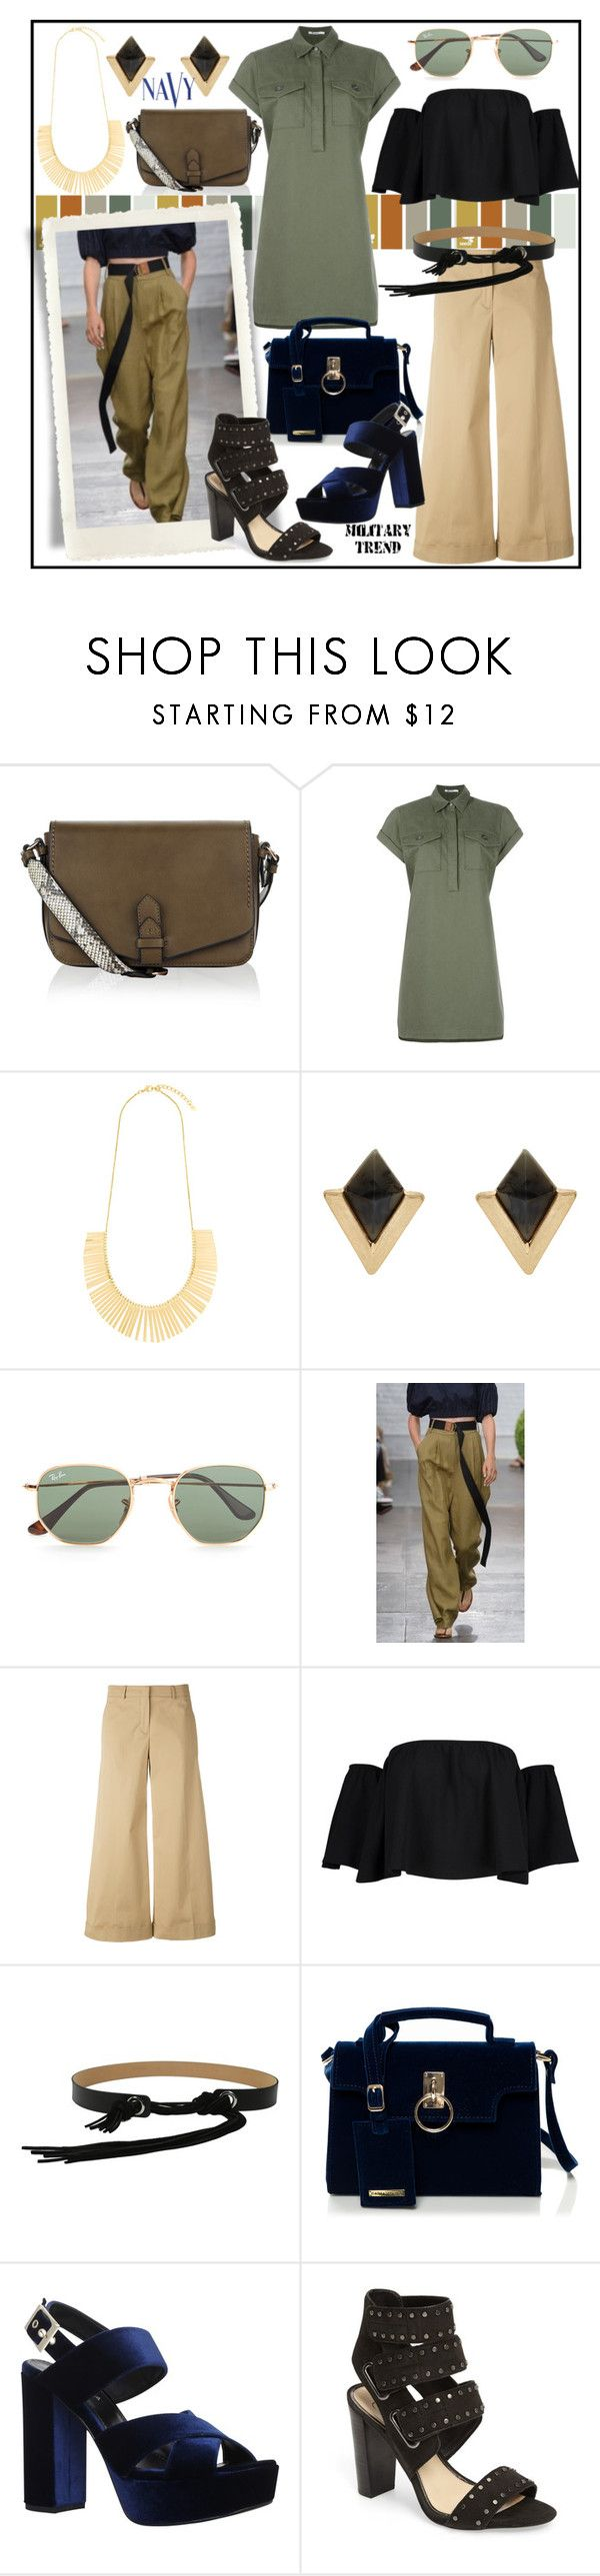 """MILITARY TREND!!!"" by kskafida ❤ liked on Polyvore featuring Accessorize, T By Alexander Wang, Ray-Ban, TIBI, Loro Piana, Boohoo, McQ by Alexander McQueen, Carvela, Jessica Simpson and COVERGIRL"